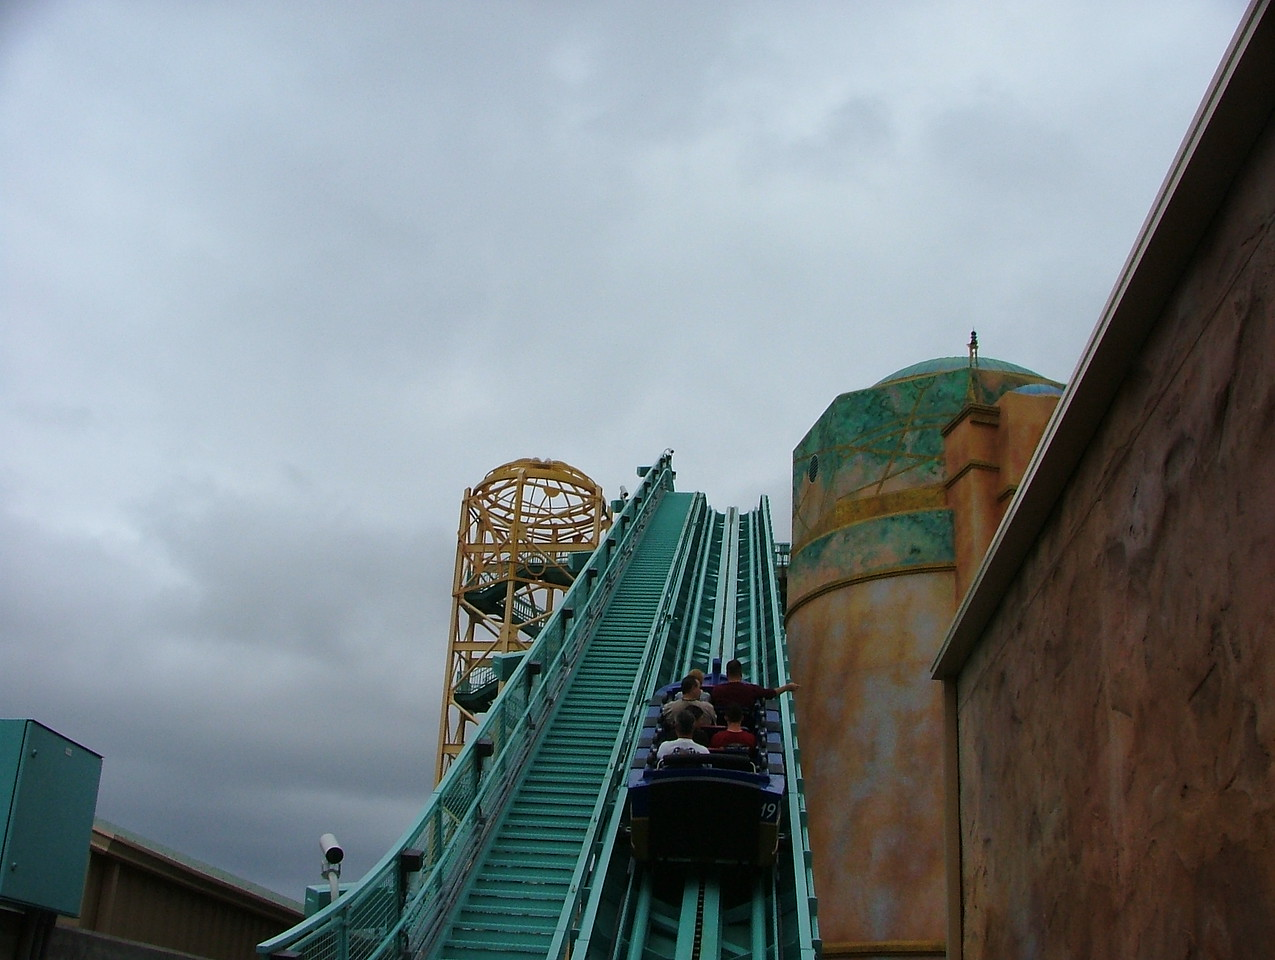 Interesting, most coaster have there upstop wheels on the bottom, JtA uses the top lip on the track, a true UP stop....